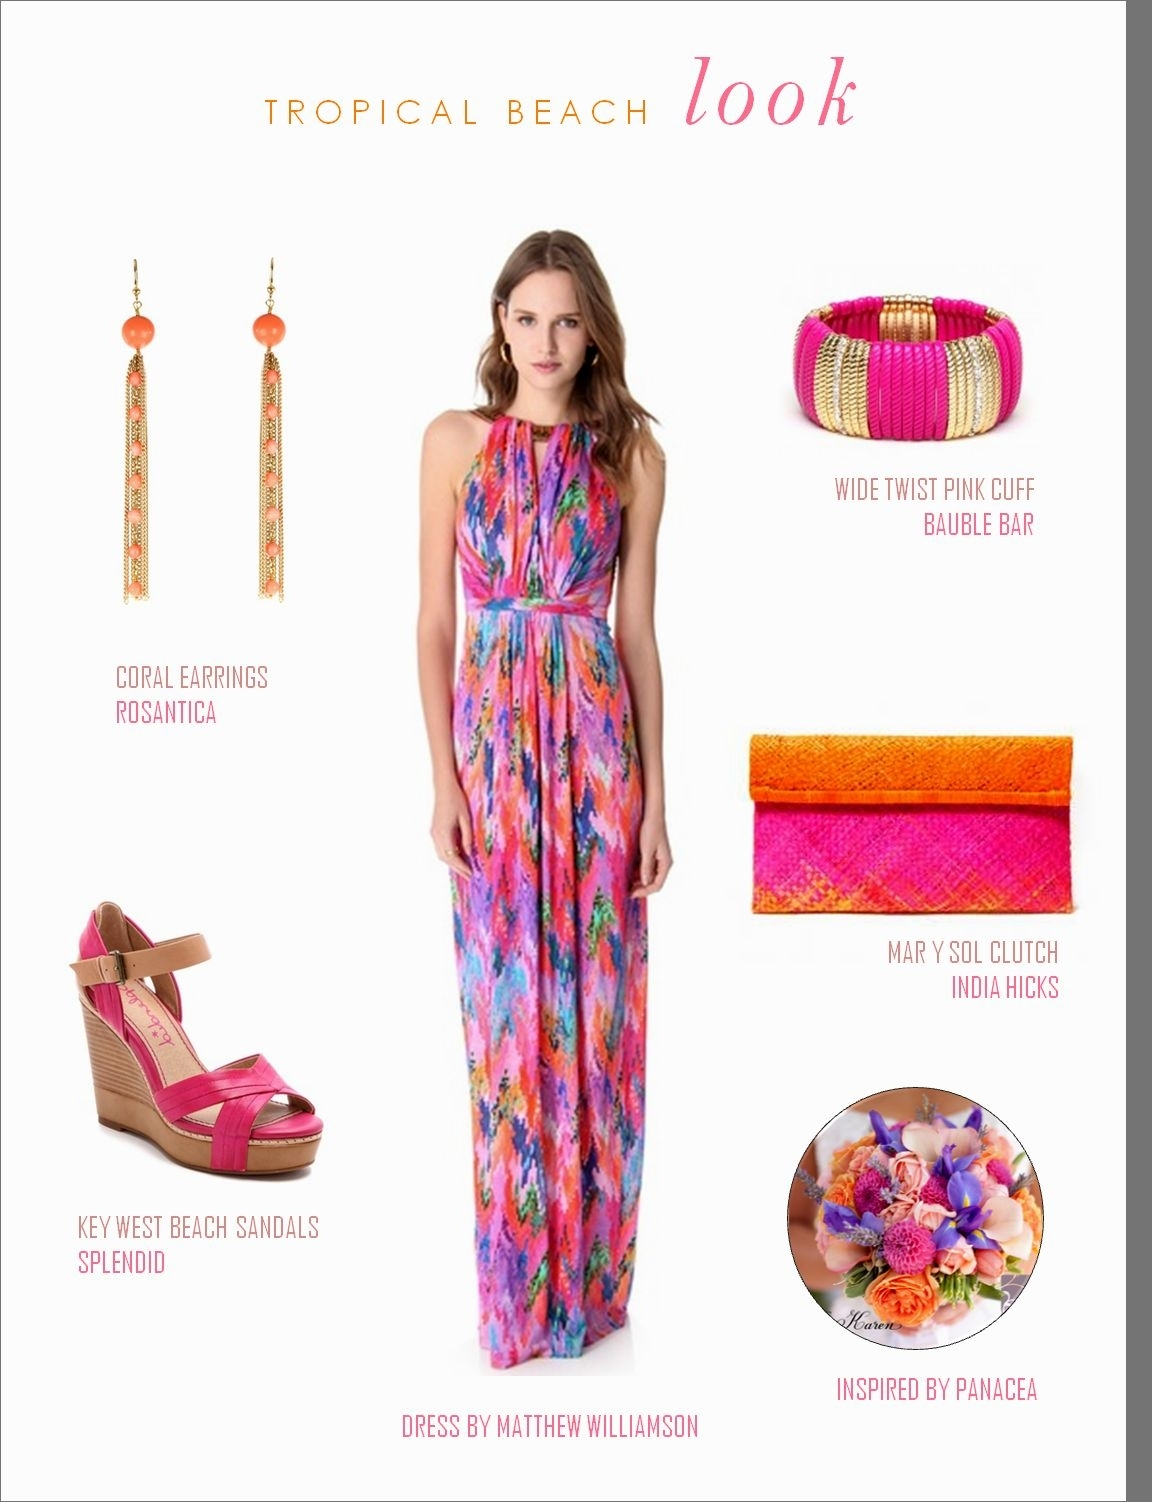 what-to-wear-for-a-summer-wedding-guest-outfit-pink-magenta-dress-maxi-print-magenta-shoe-sandalw-earrings-beach-pink-bag-clutch-bracelet-dinner.jpg